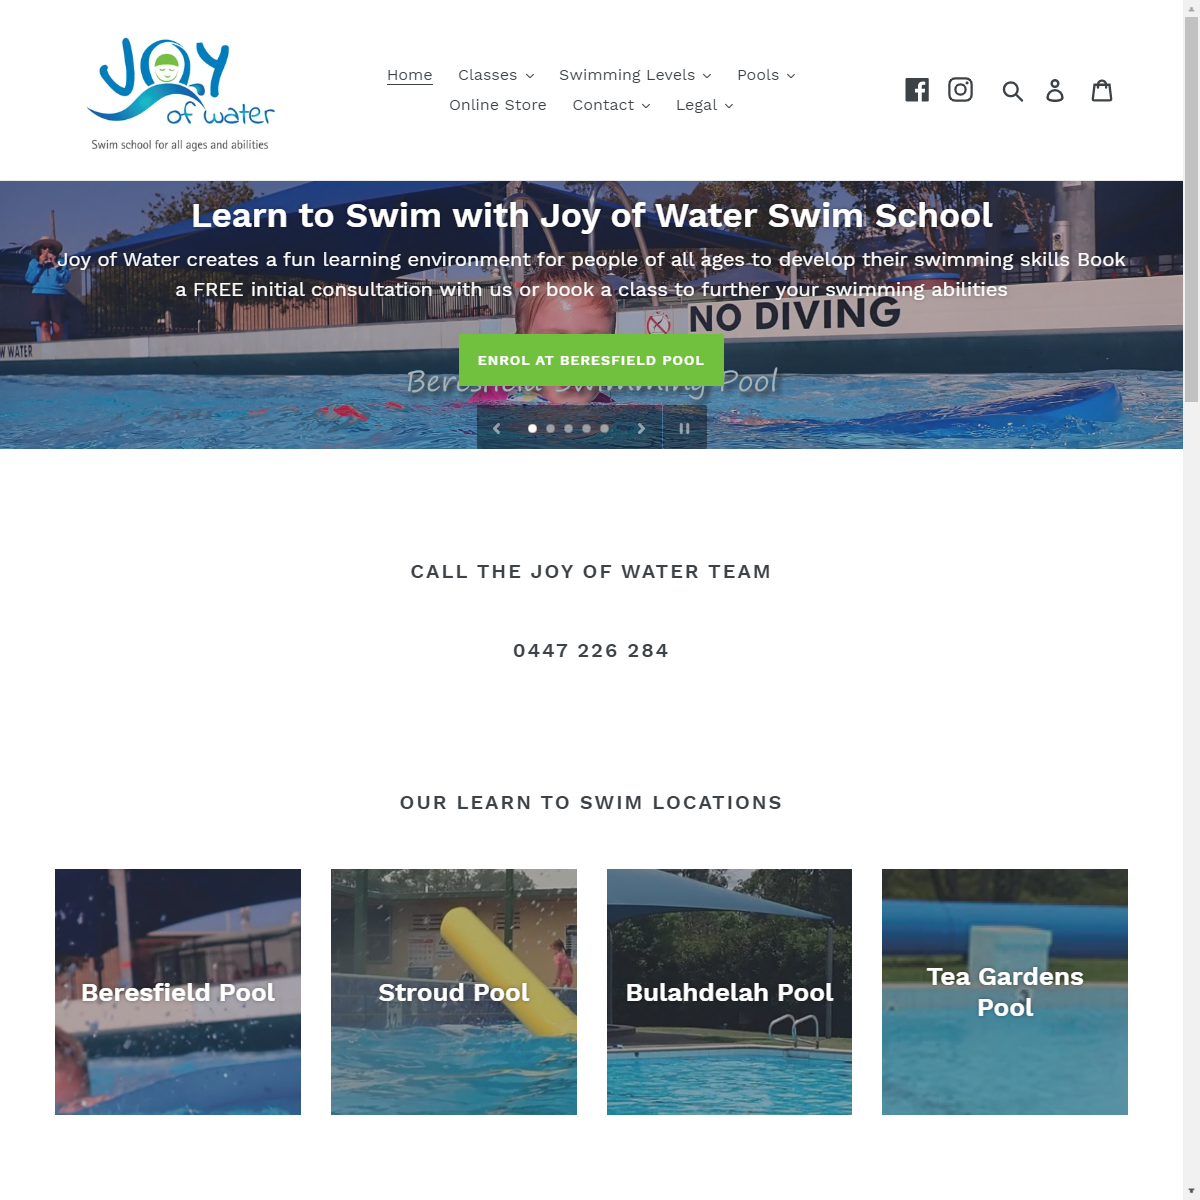 Joy of Water Website Design